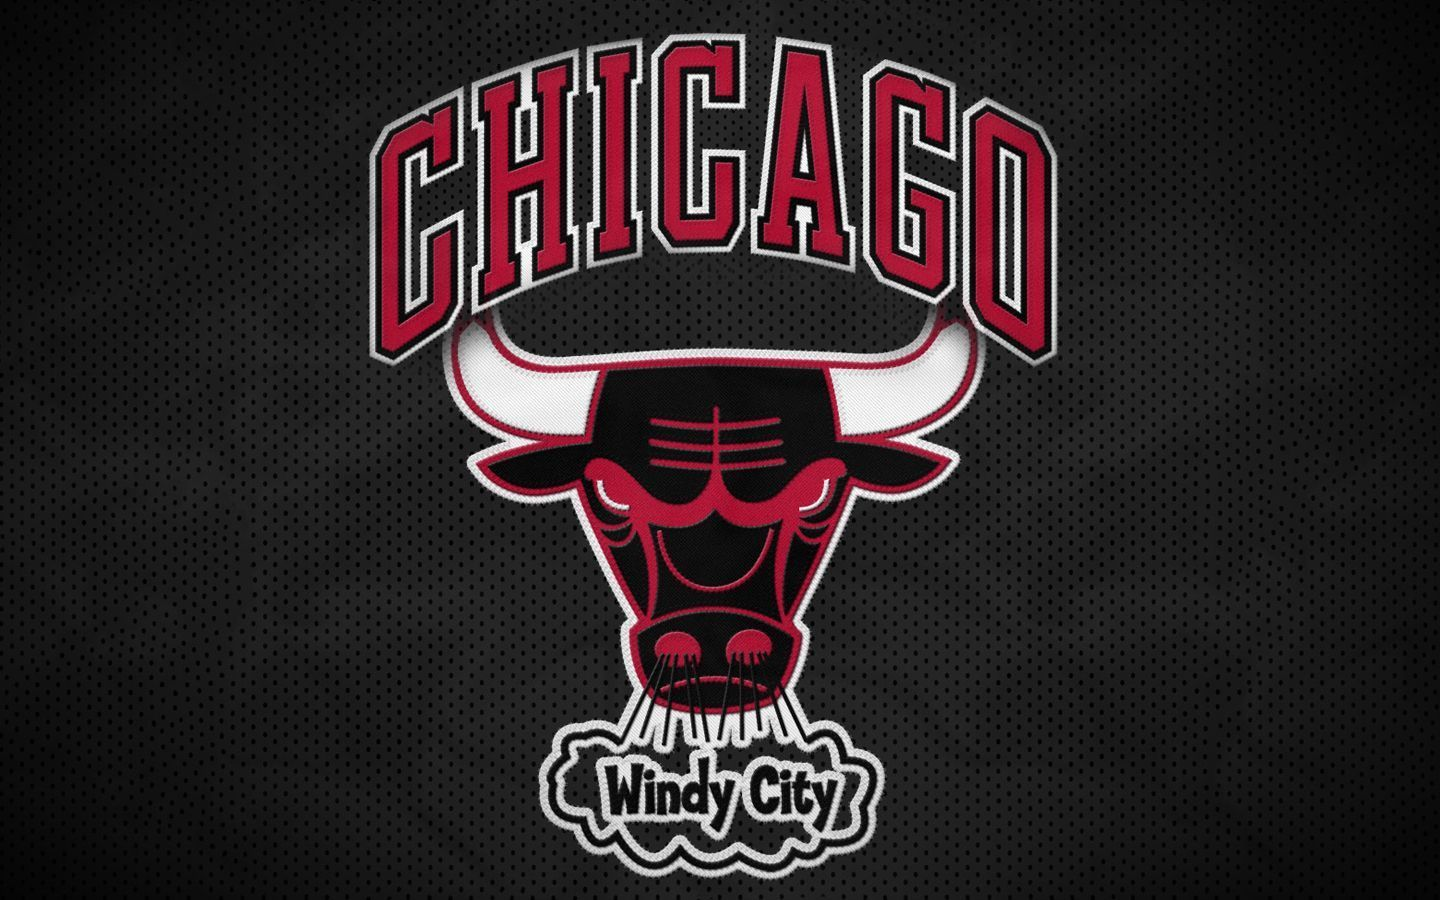 Chicago bulls wallpapers hd wallpaper cave free wallpapers chicago bulls wallpapers hd wallpaper cave voltagebd Image collections